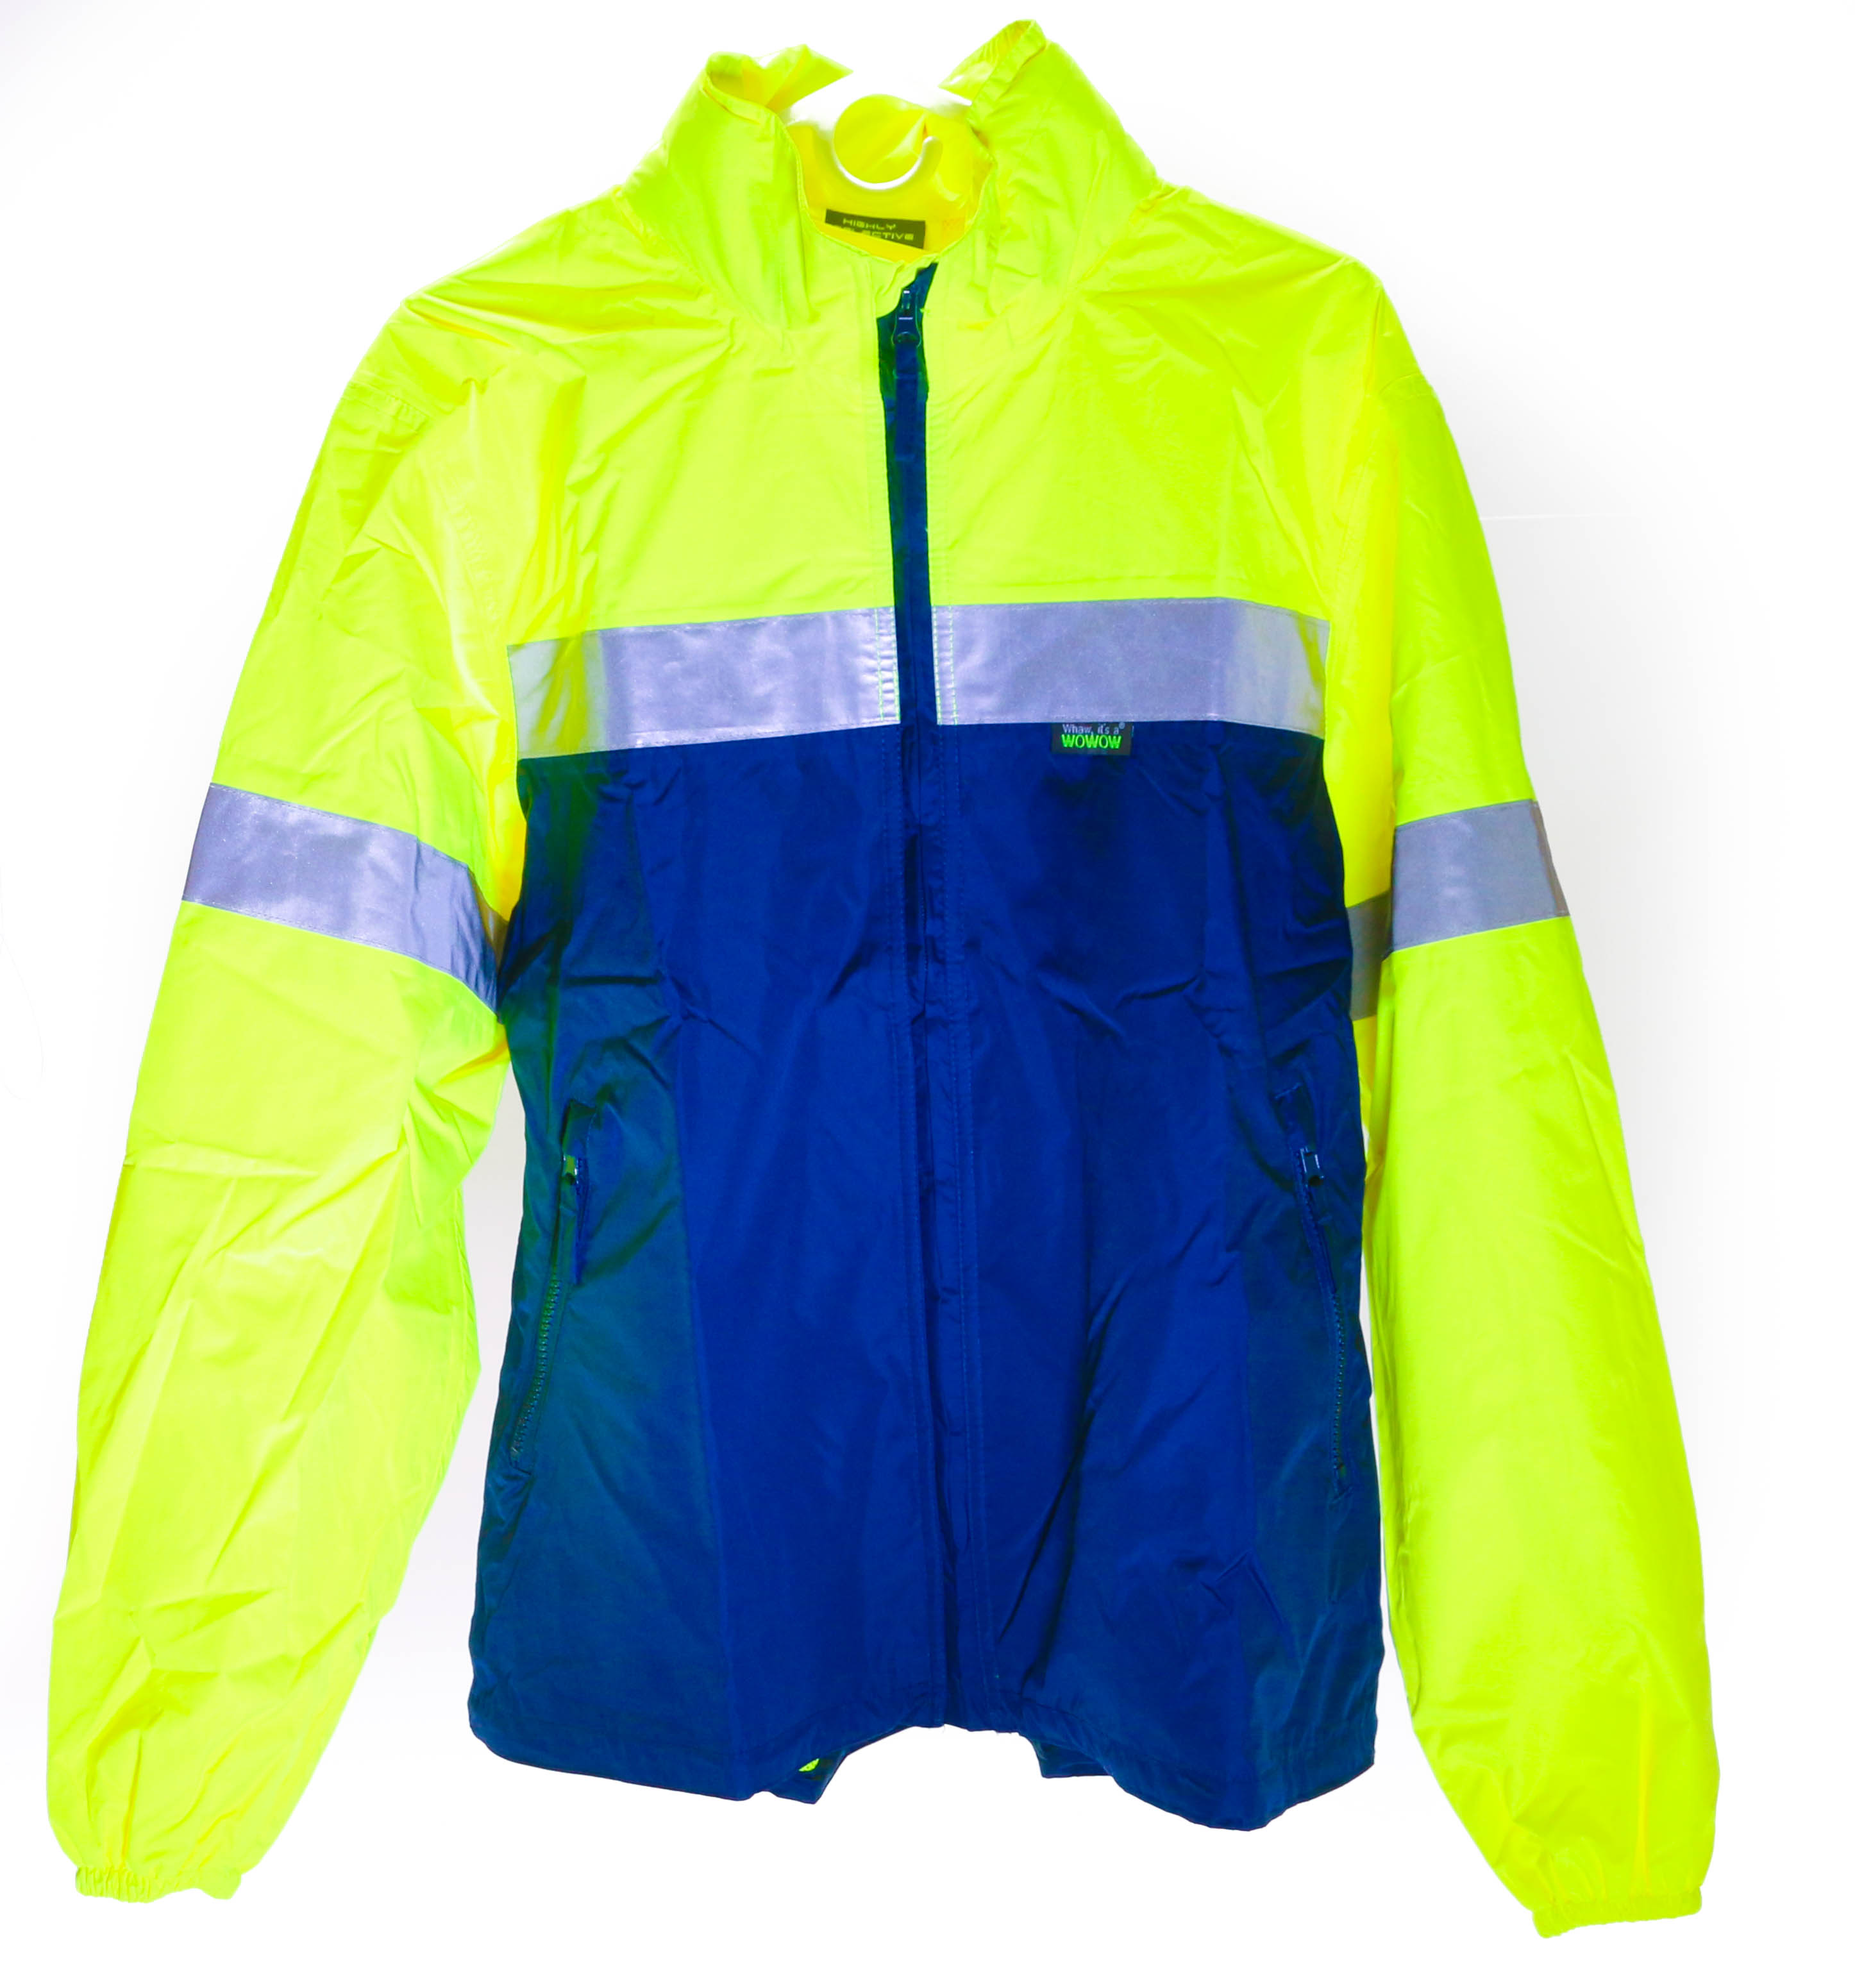 WOWOW Reflective RW-840 Small Bike Cycling Outdoor Rain Jacket Waterproof New by